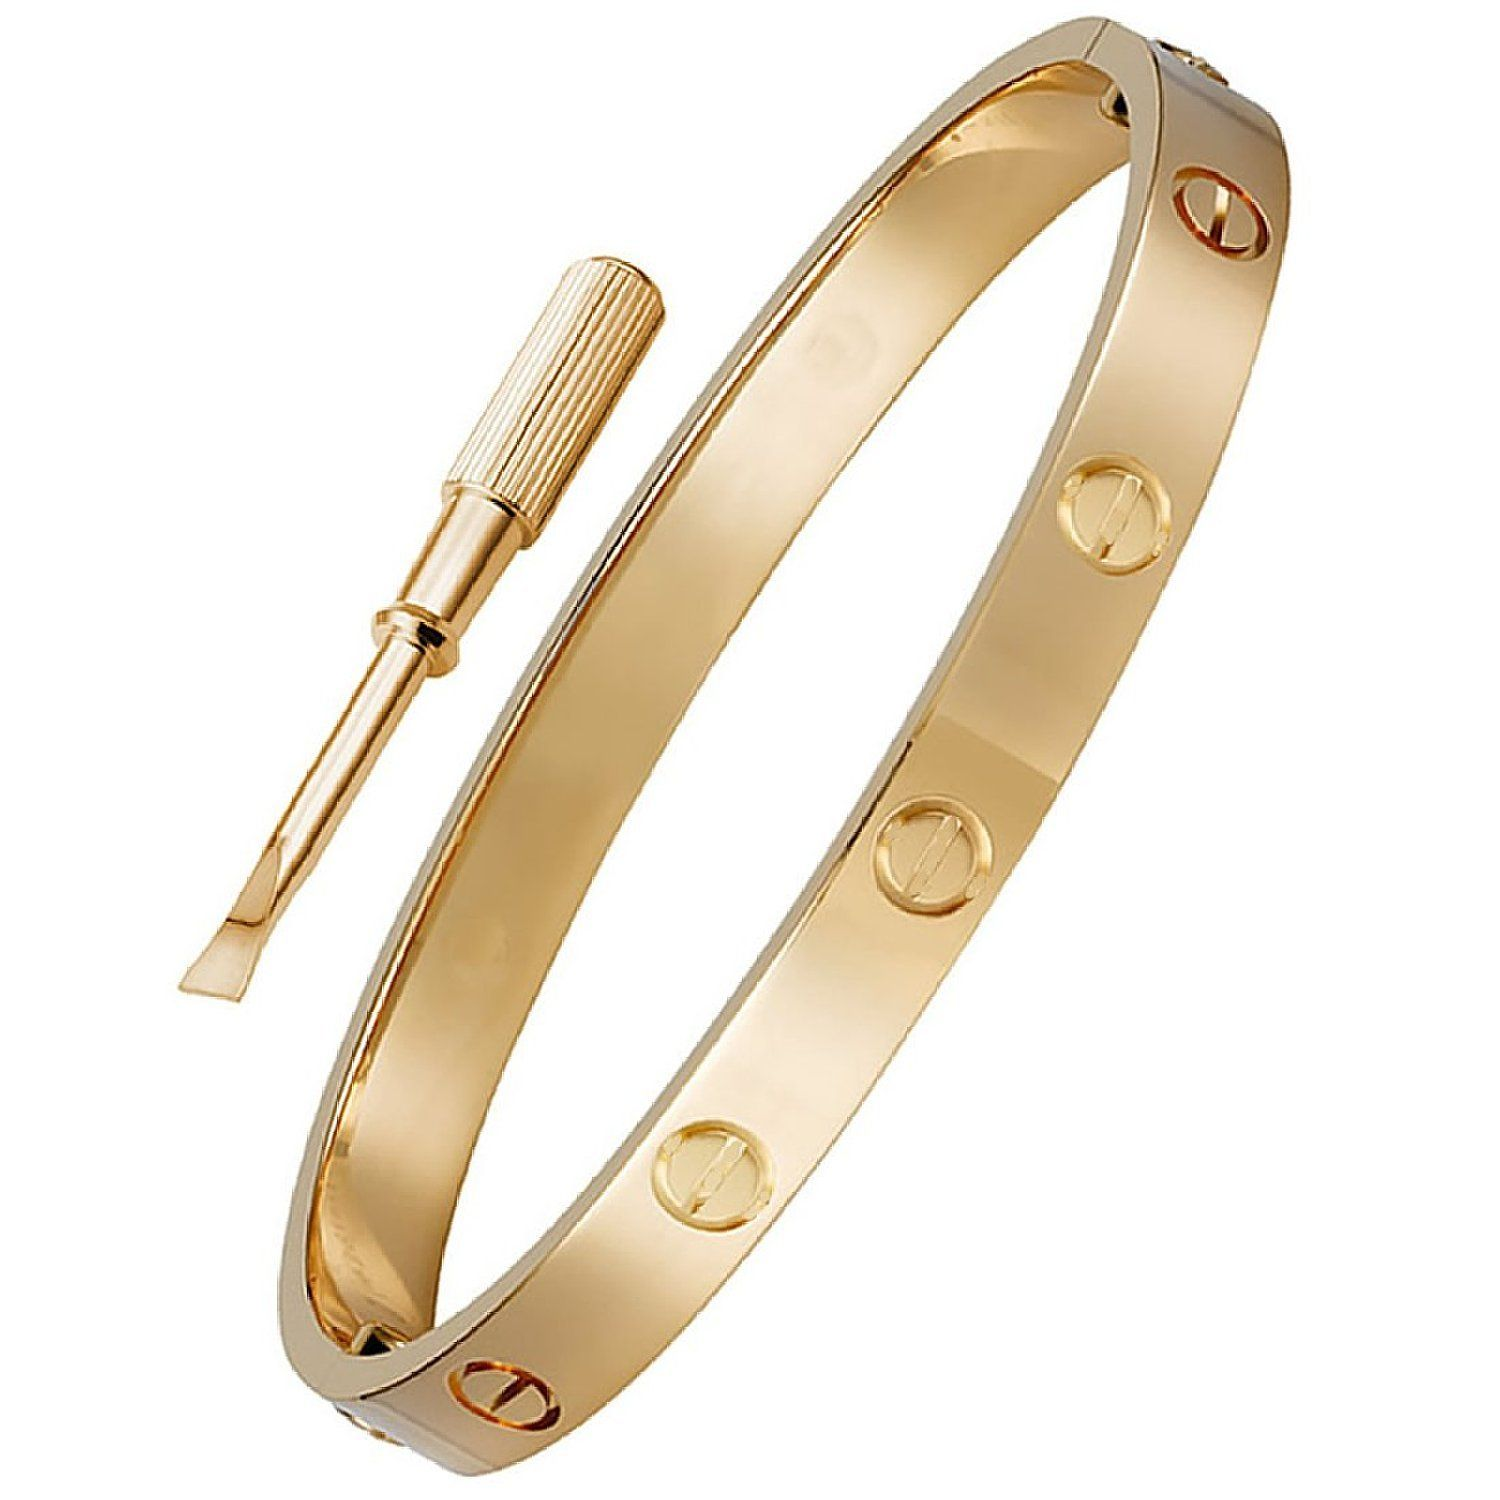 three for diamond knot bangles j gold bangle master oval sale white id at jewelry bracelets